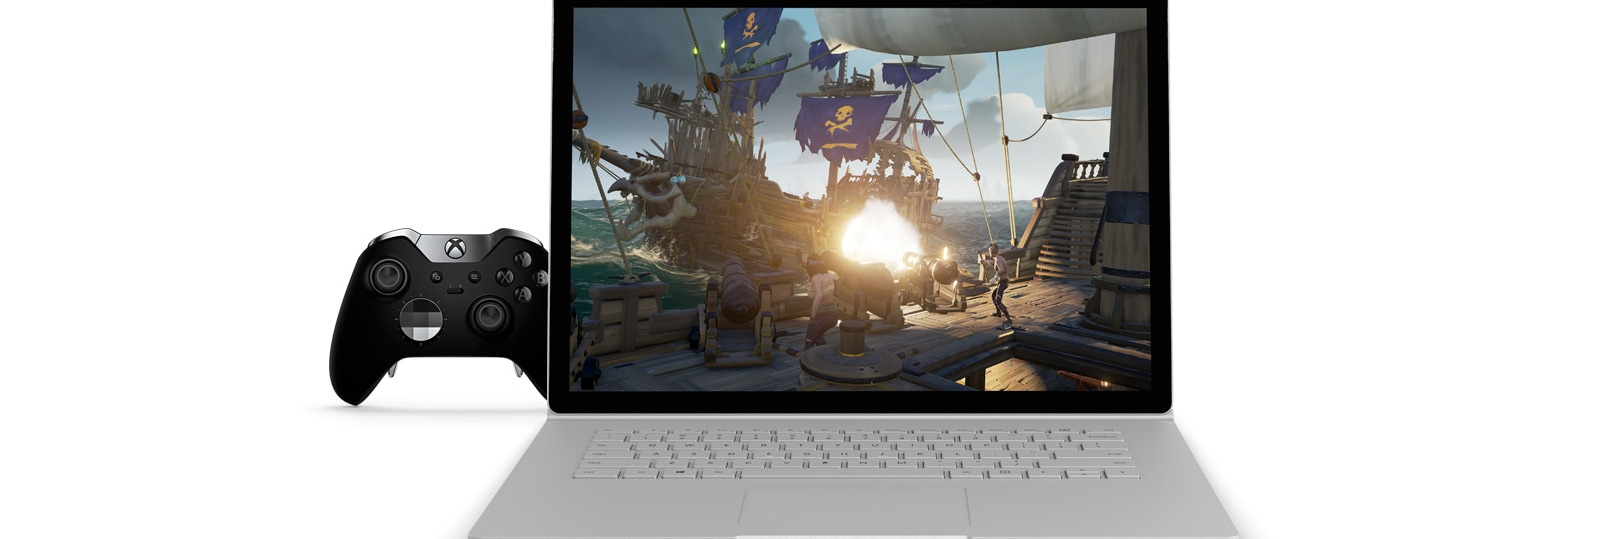 "Immagine del gioco Sea of Thieves su un dispositivo Surface Book 2 da 15"", affiancato da un Controller Elite per Xbox"